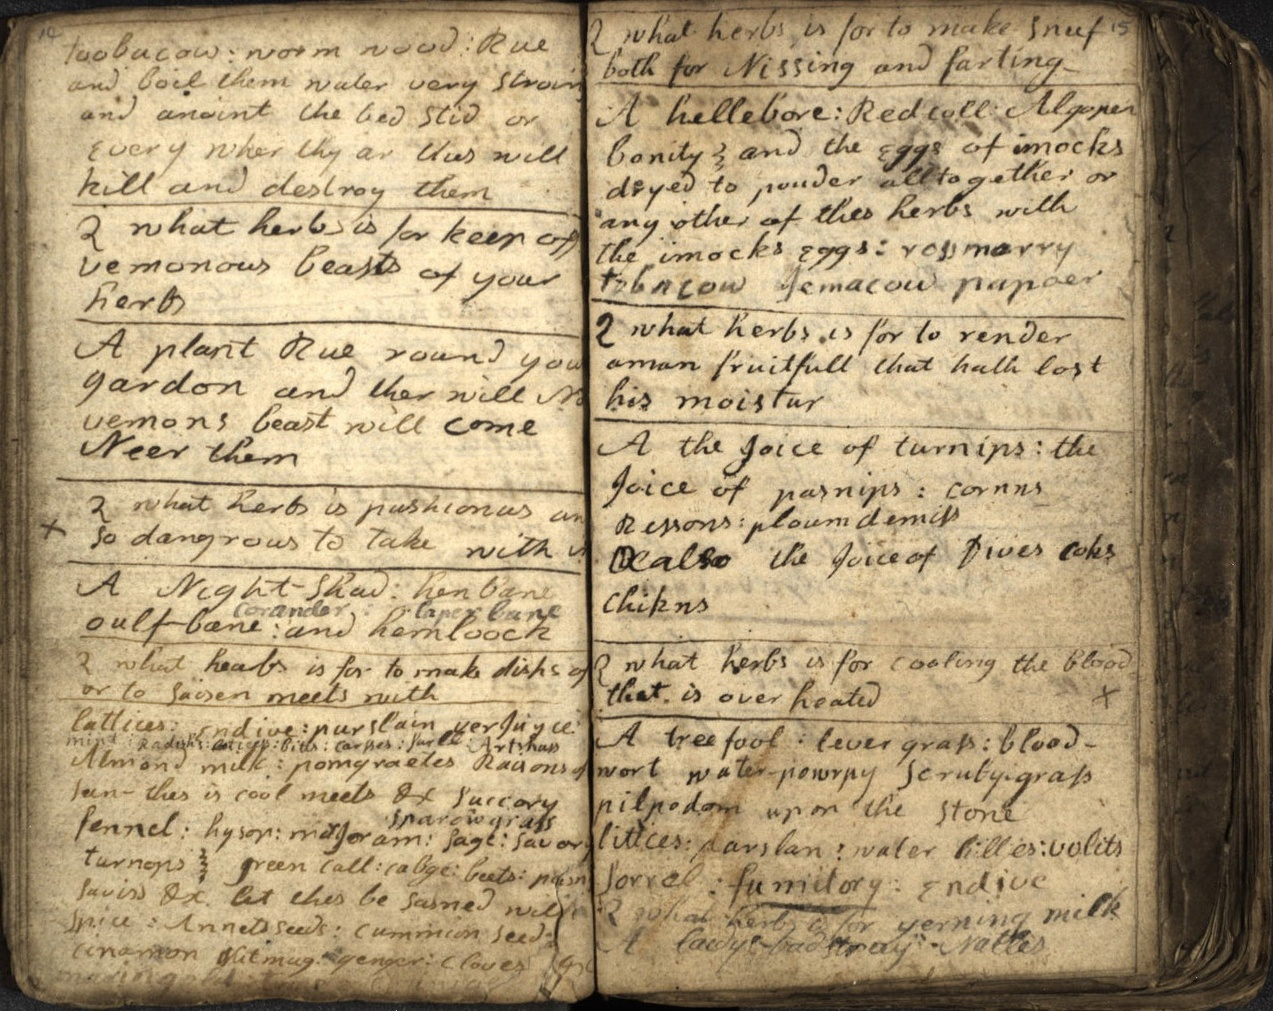 18th century Scottish cunning man's herbal grimoire